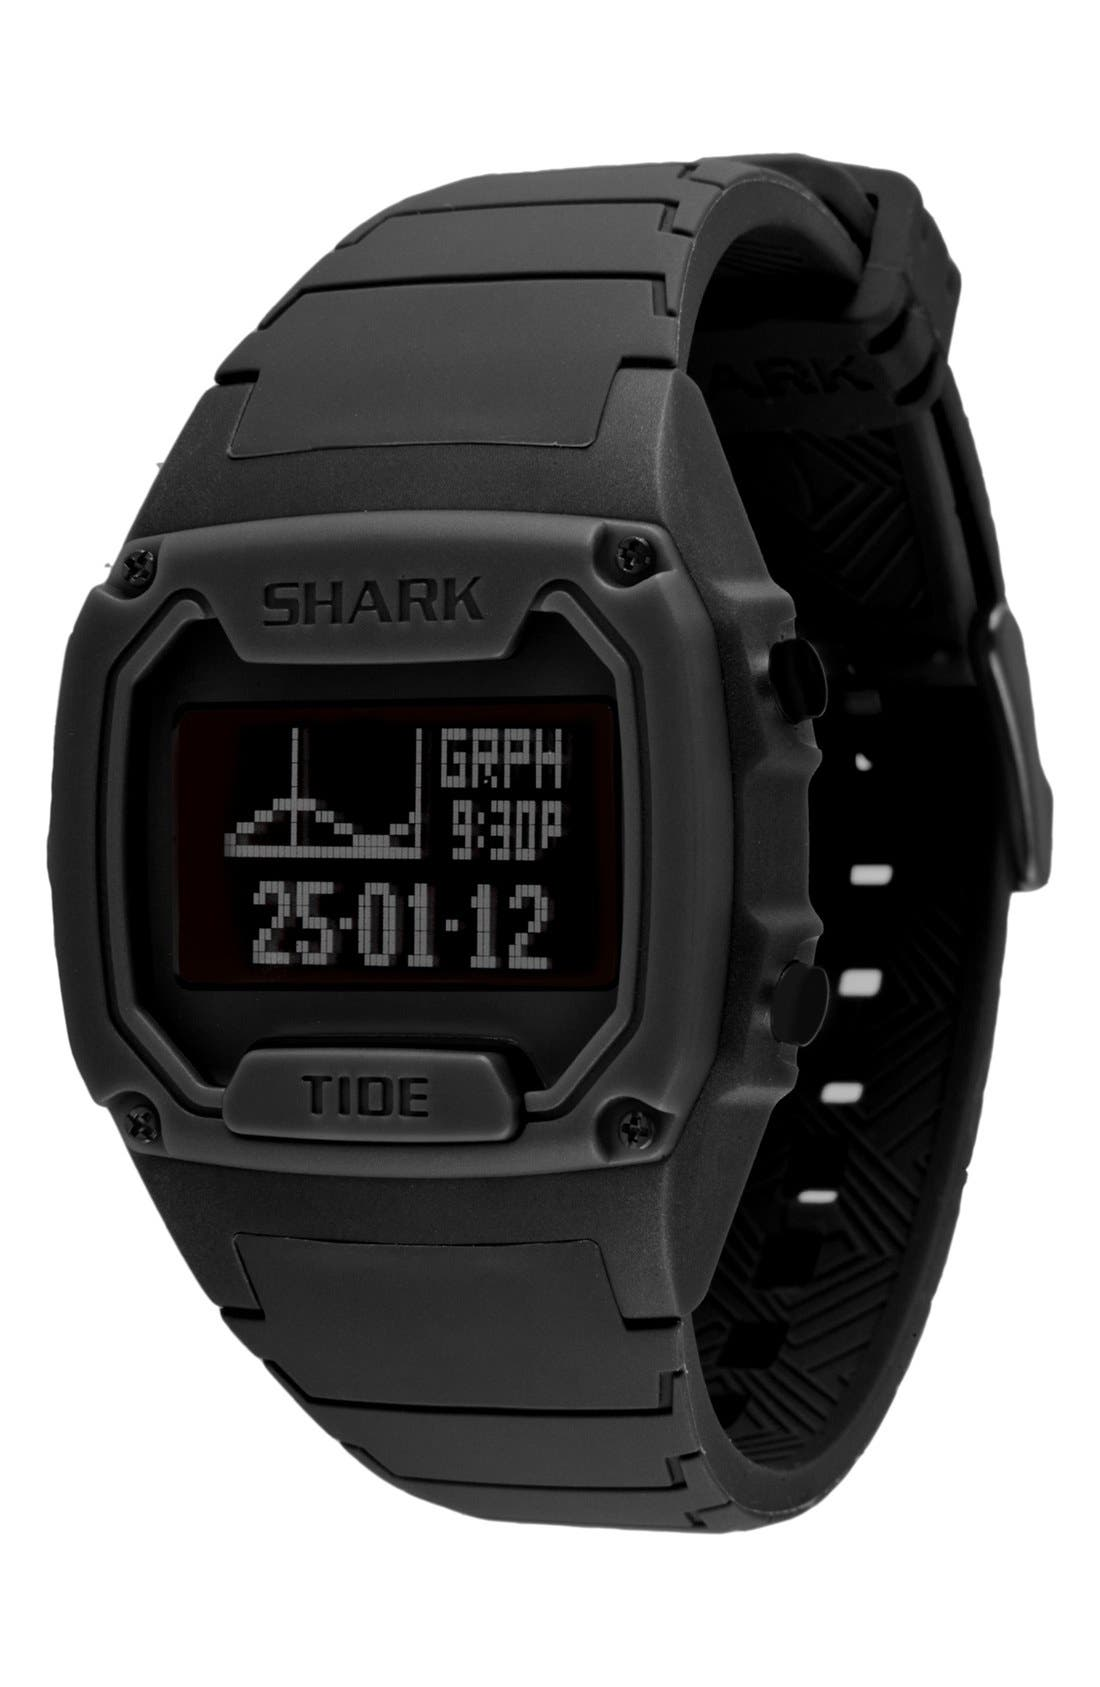 Alternate Image 1 Selected - Freestyle 'Shark Classic Tide' Digital Watch, 38mm